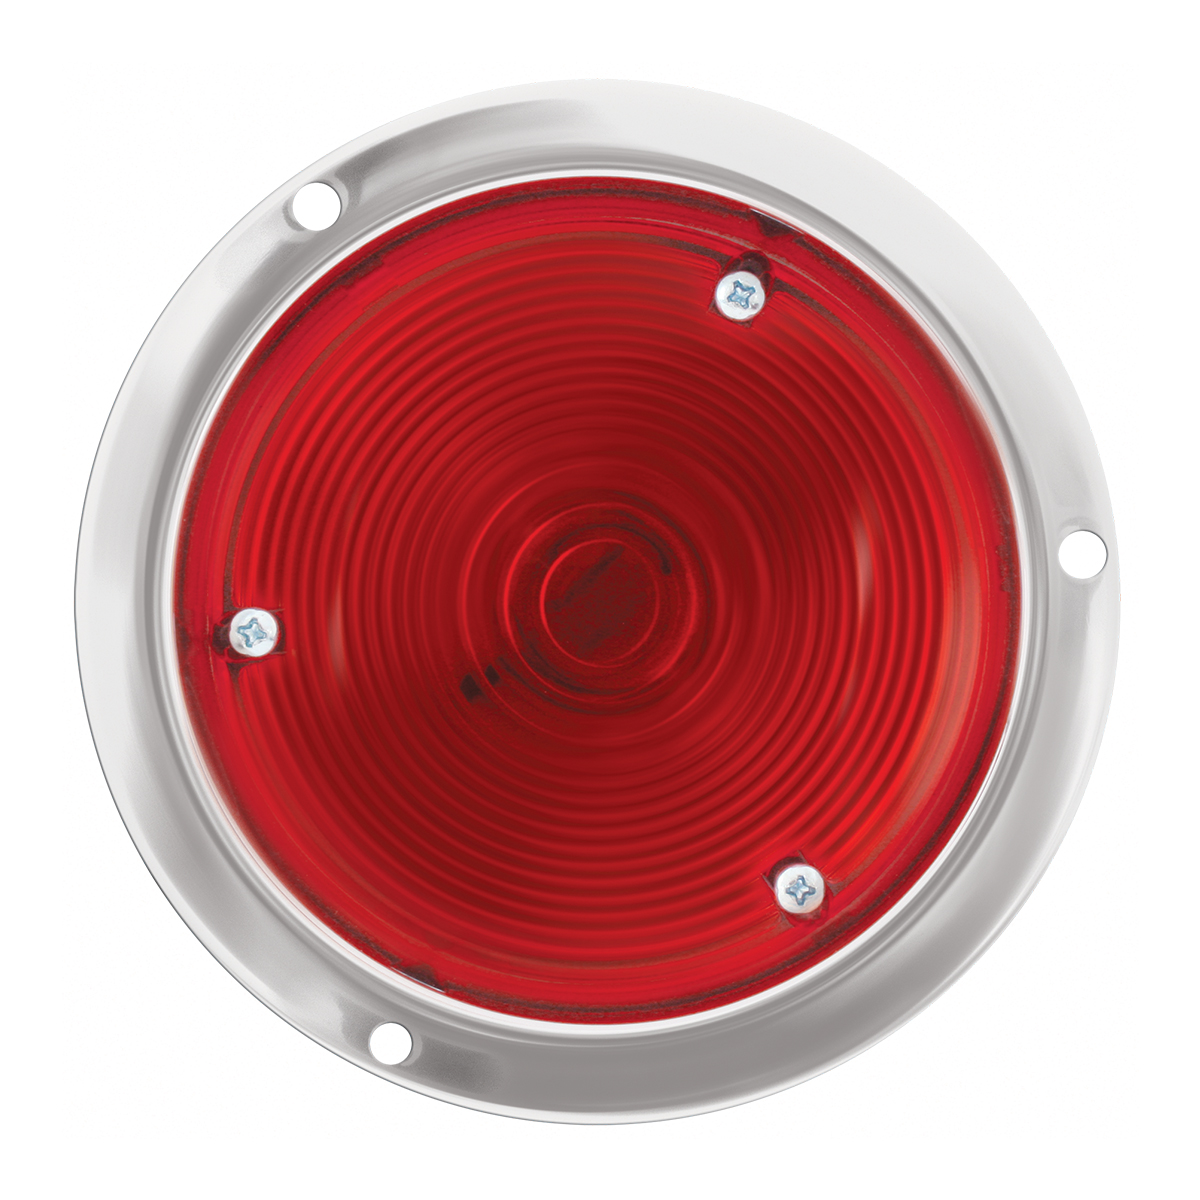 "#90380 4"" Round Incandescent S.S. Housing Red/Red Light"